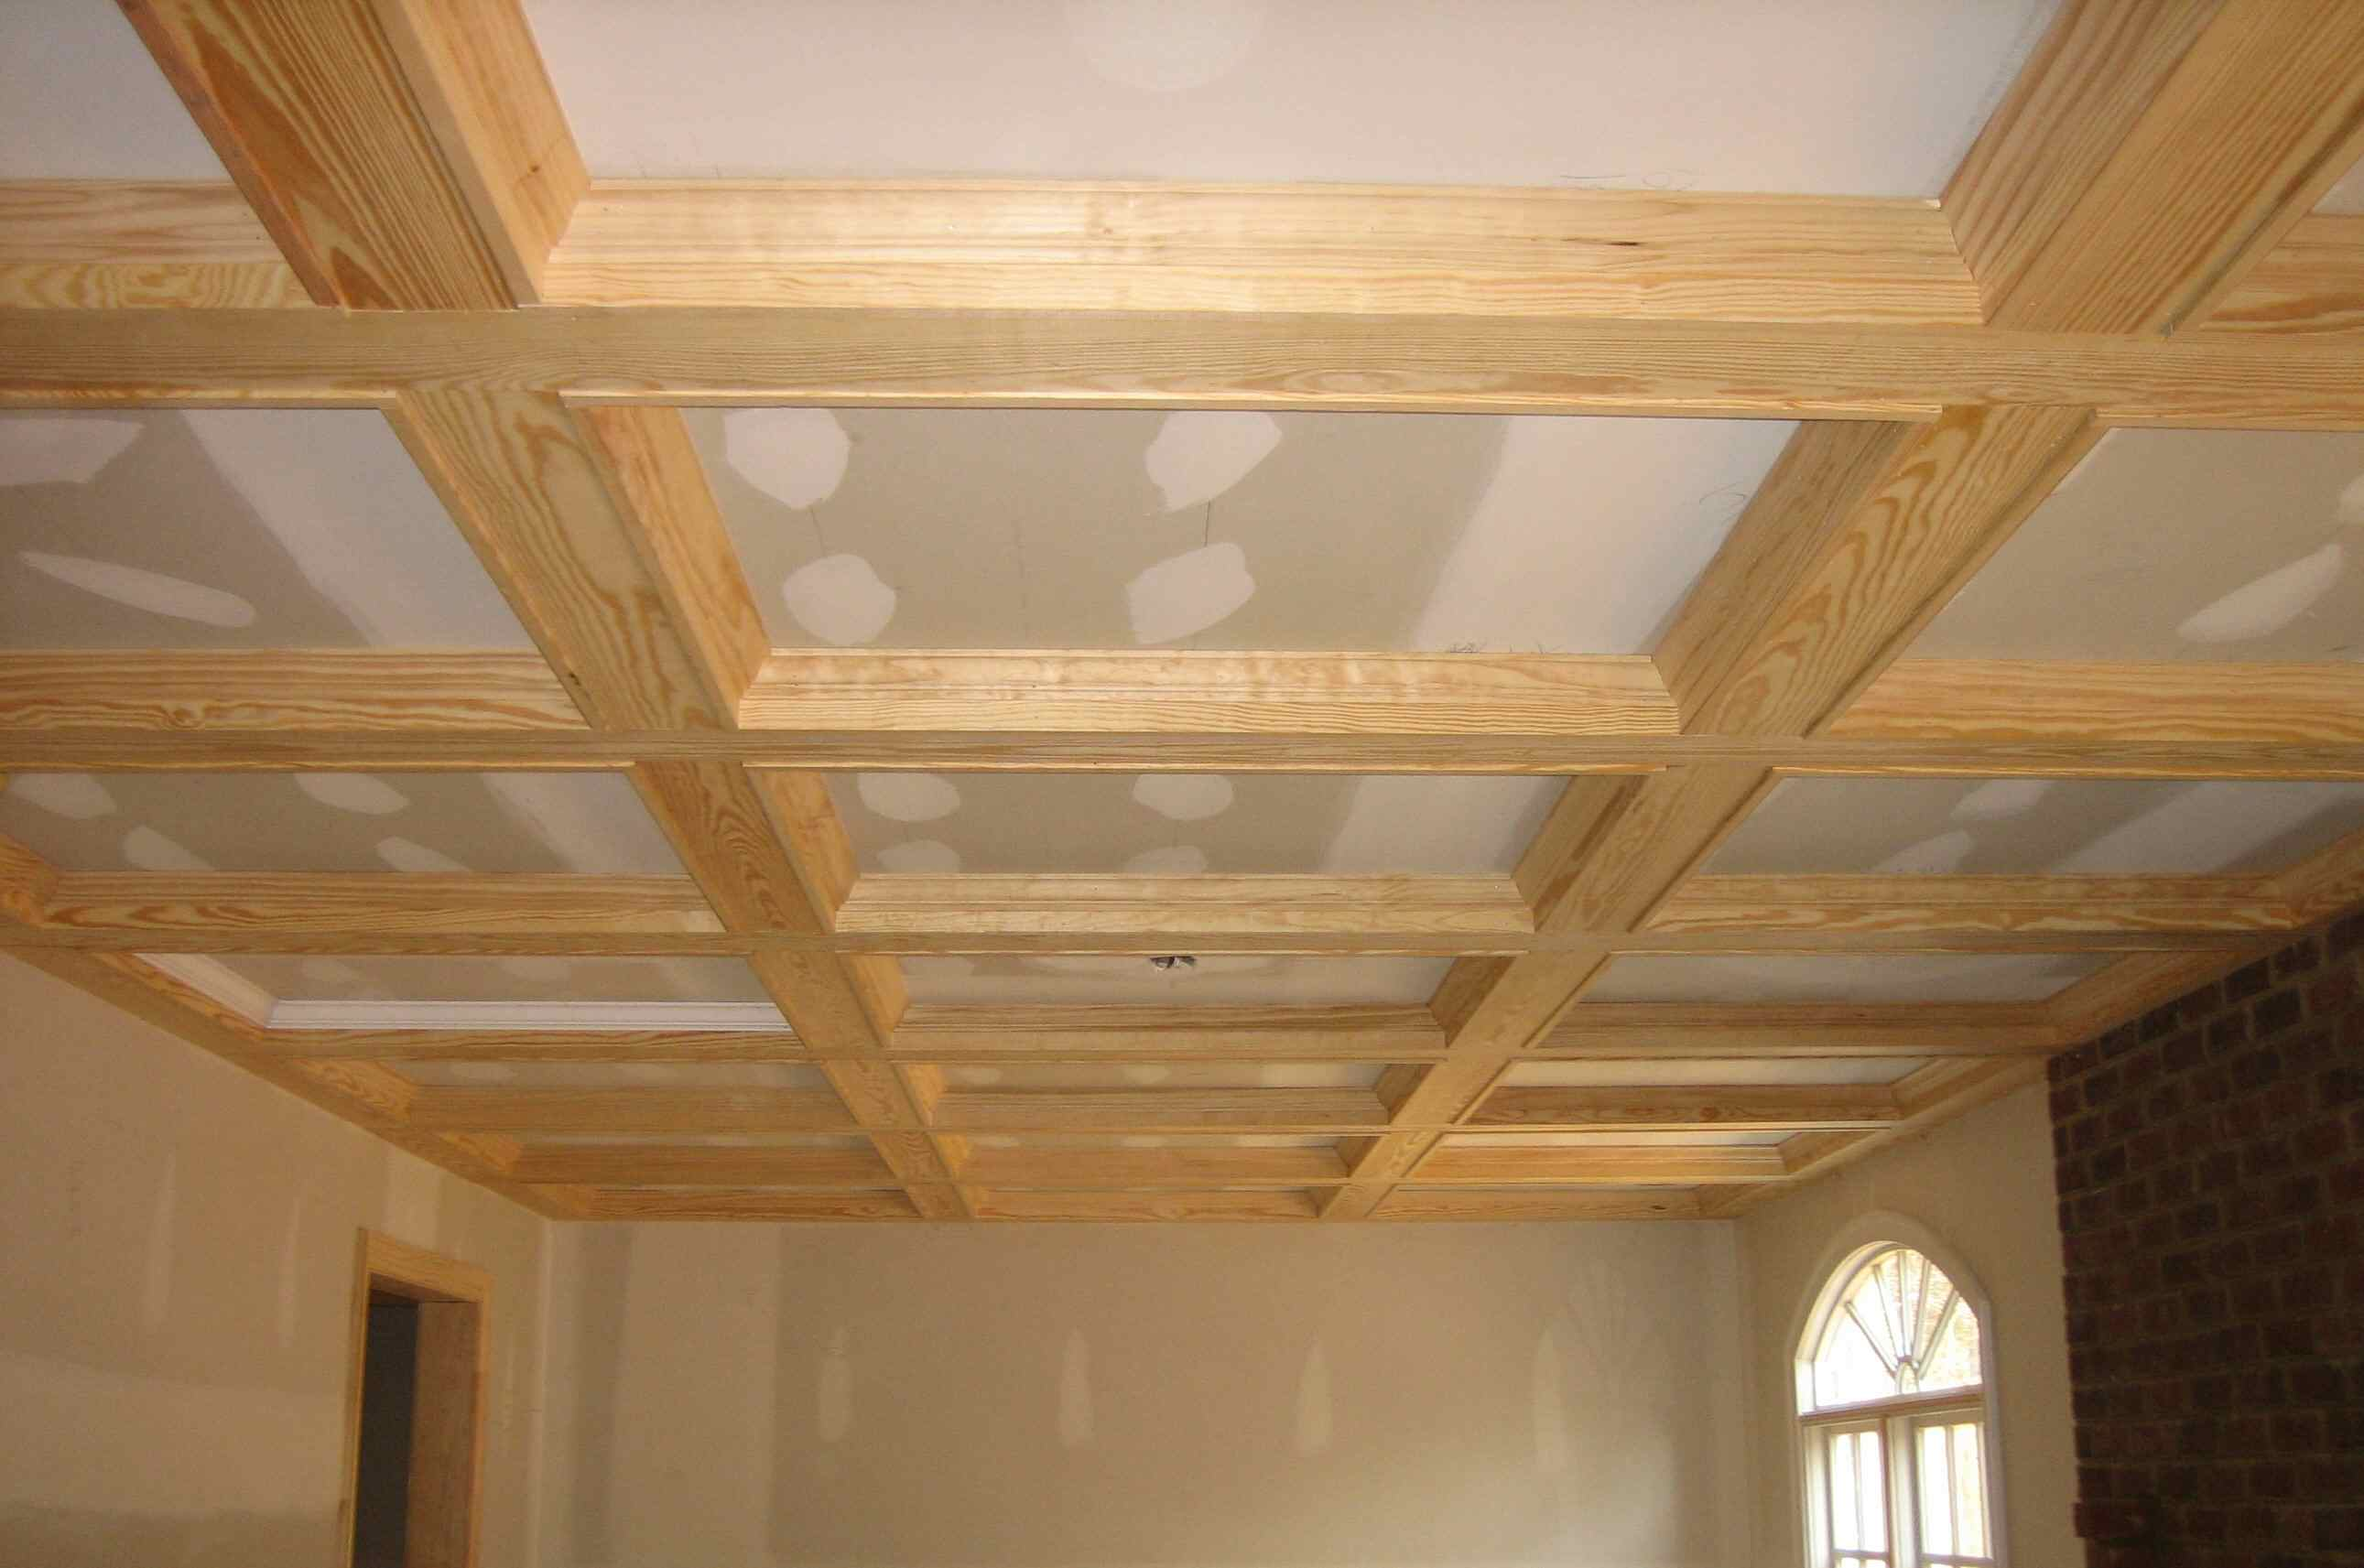 Unfinished cross and beam ceiling creating coffers unfinished coffered ceiling